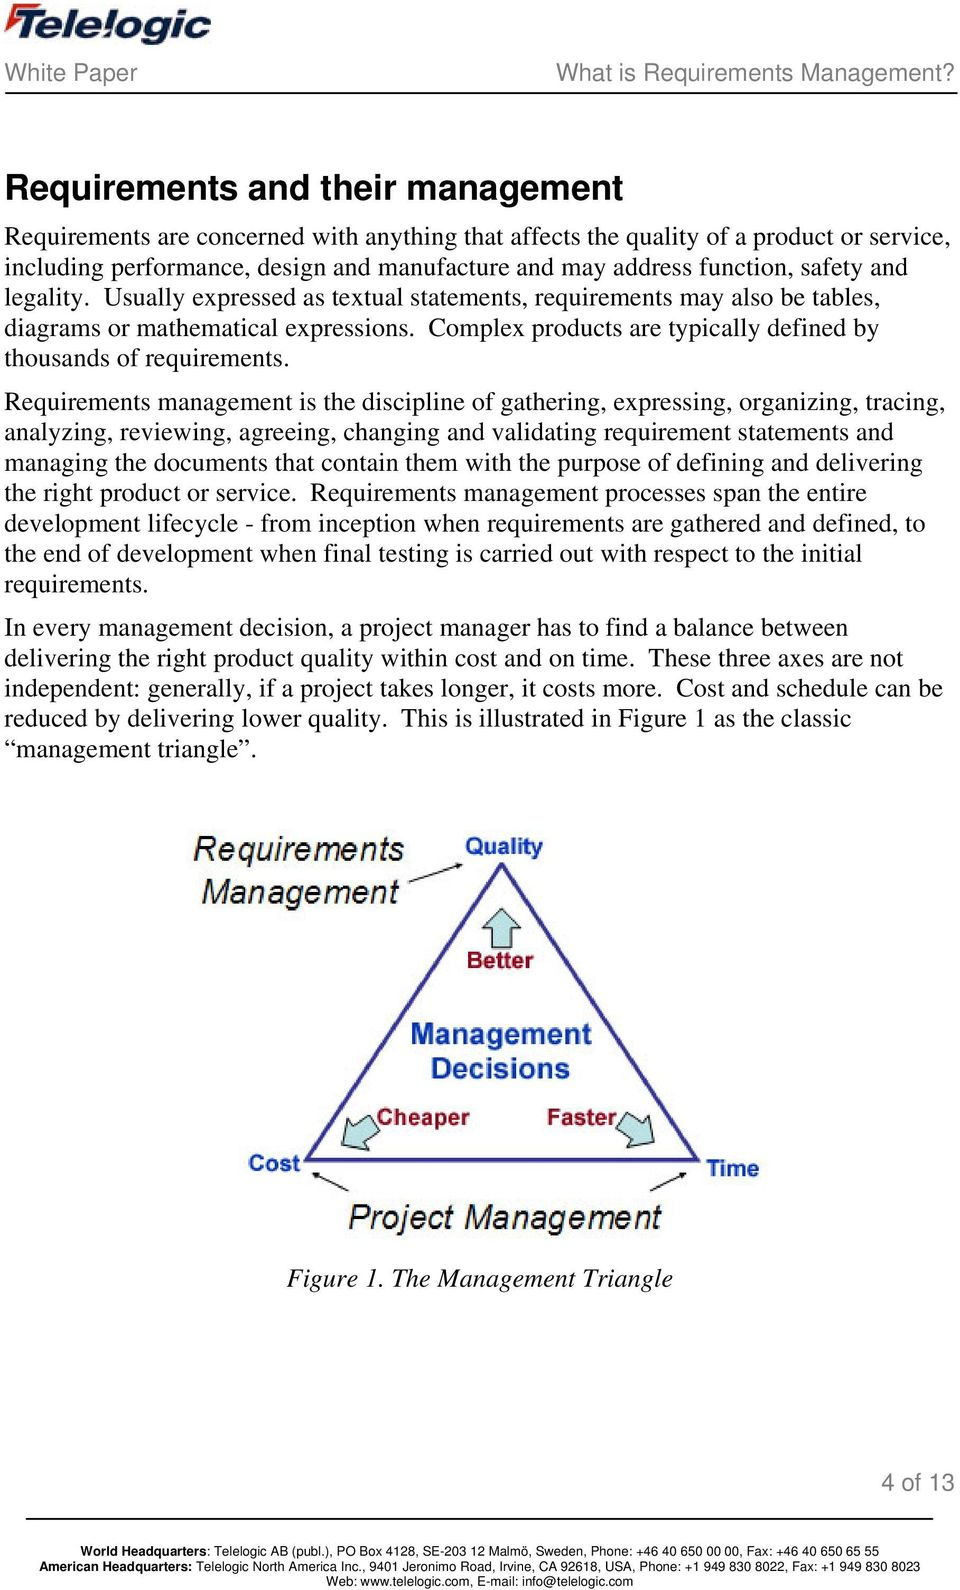 management is the discipline of gathering, expressing, organizing, tracing, analyzing, reviewing, agreeing, changing and validating requirement statements and managing the documents that contain them